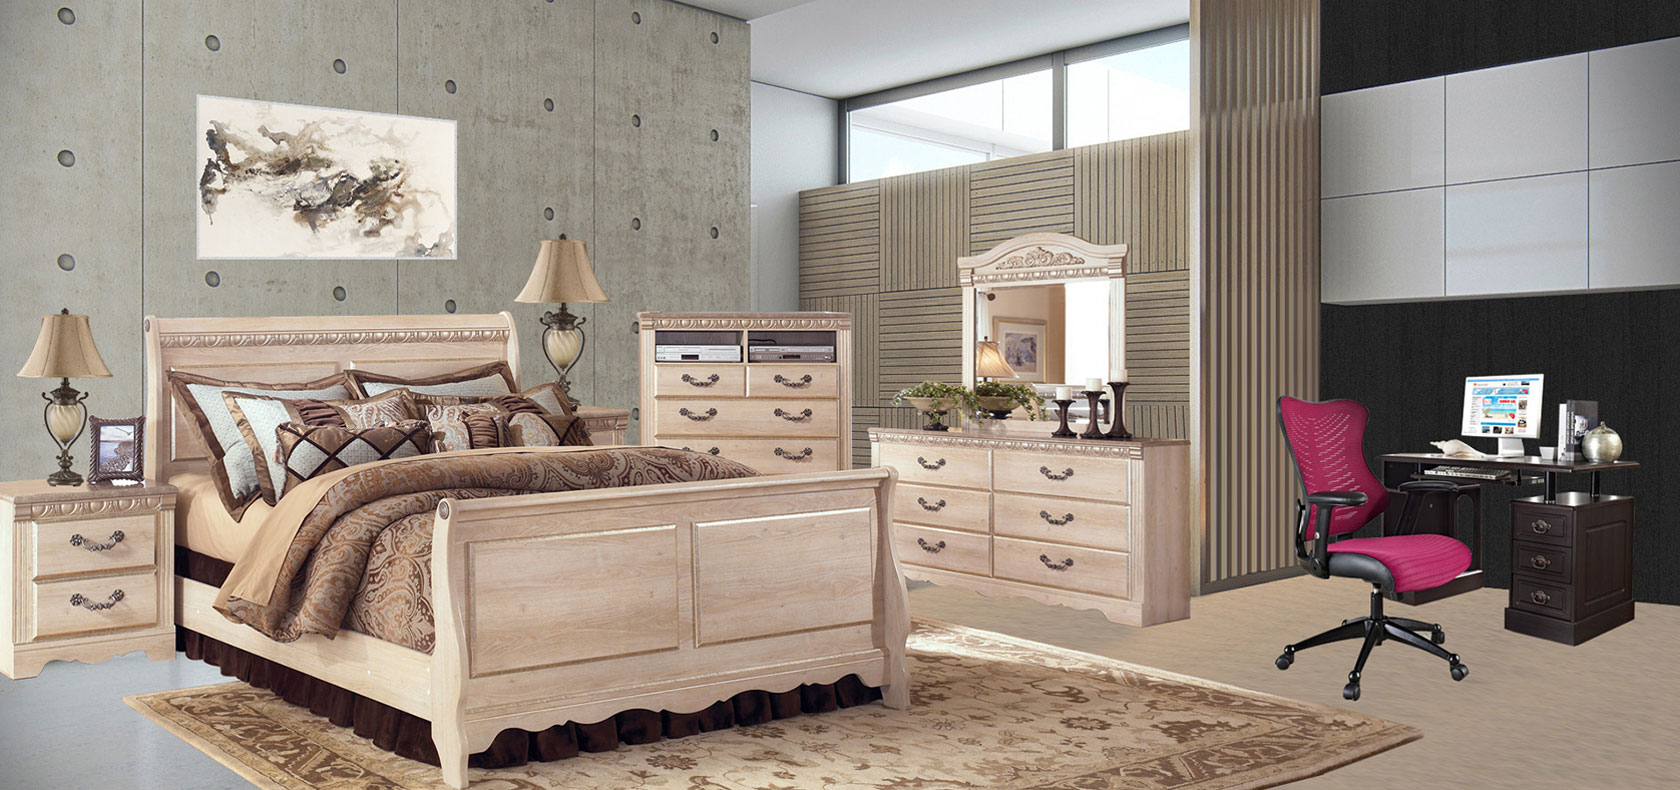 Bedroom Furniture For Couples